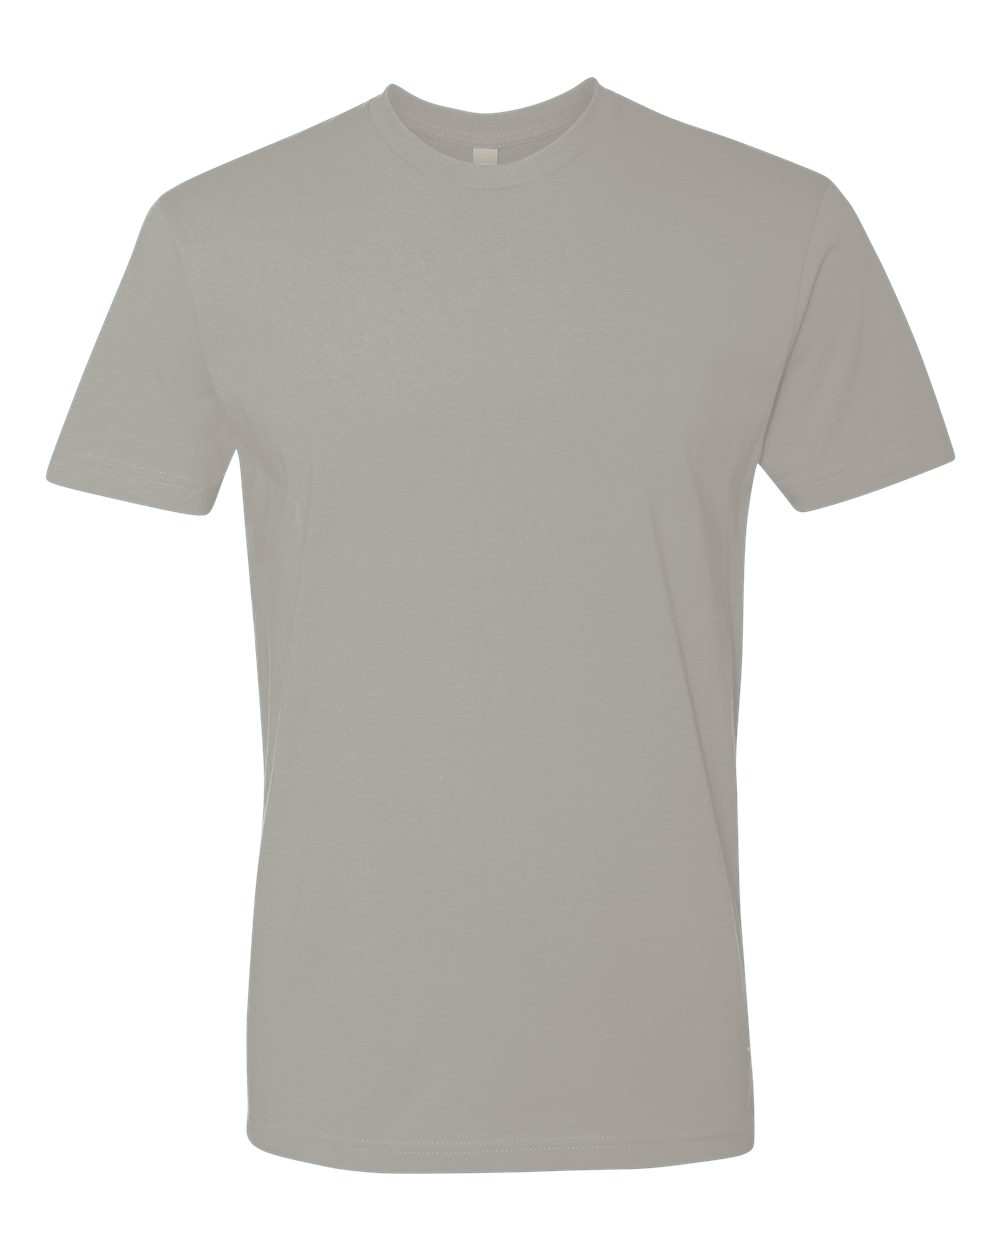 Next_Level_3600_Light_Grey_Front_High.jpg